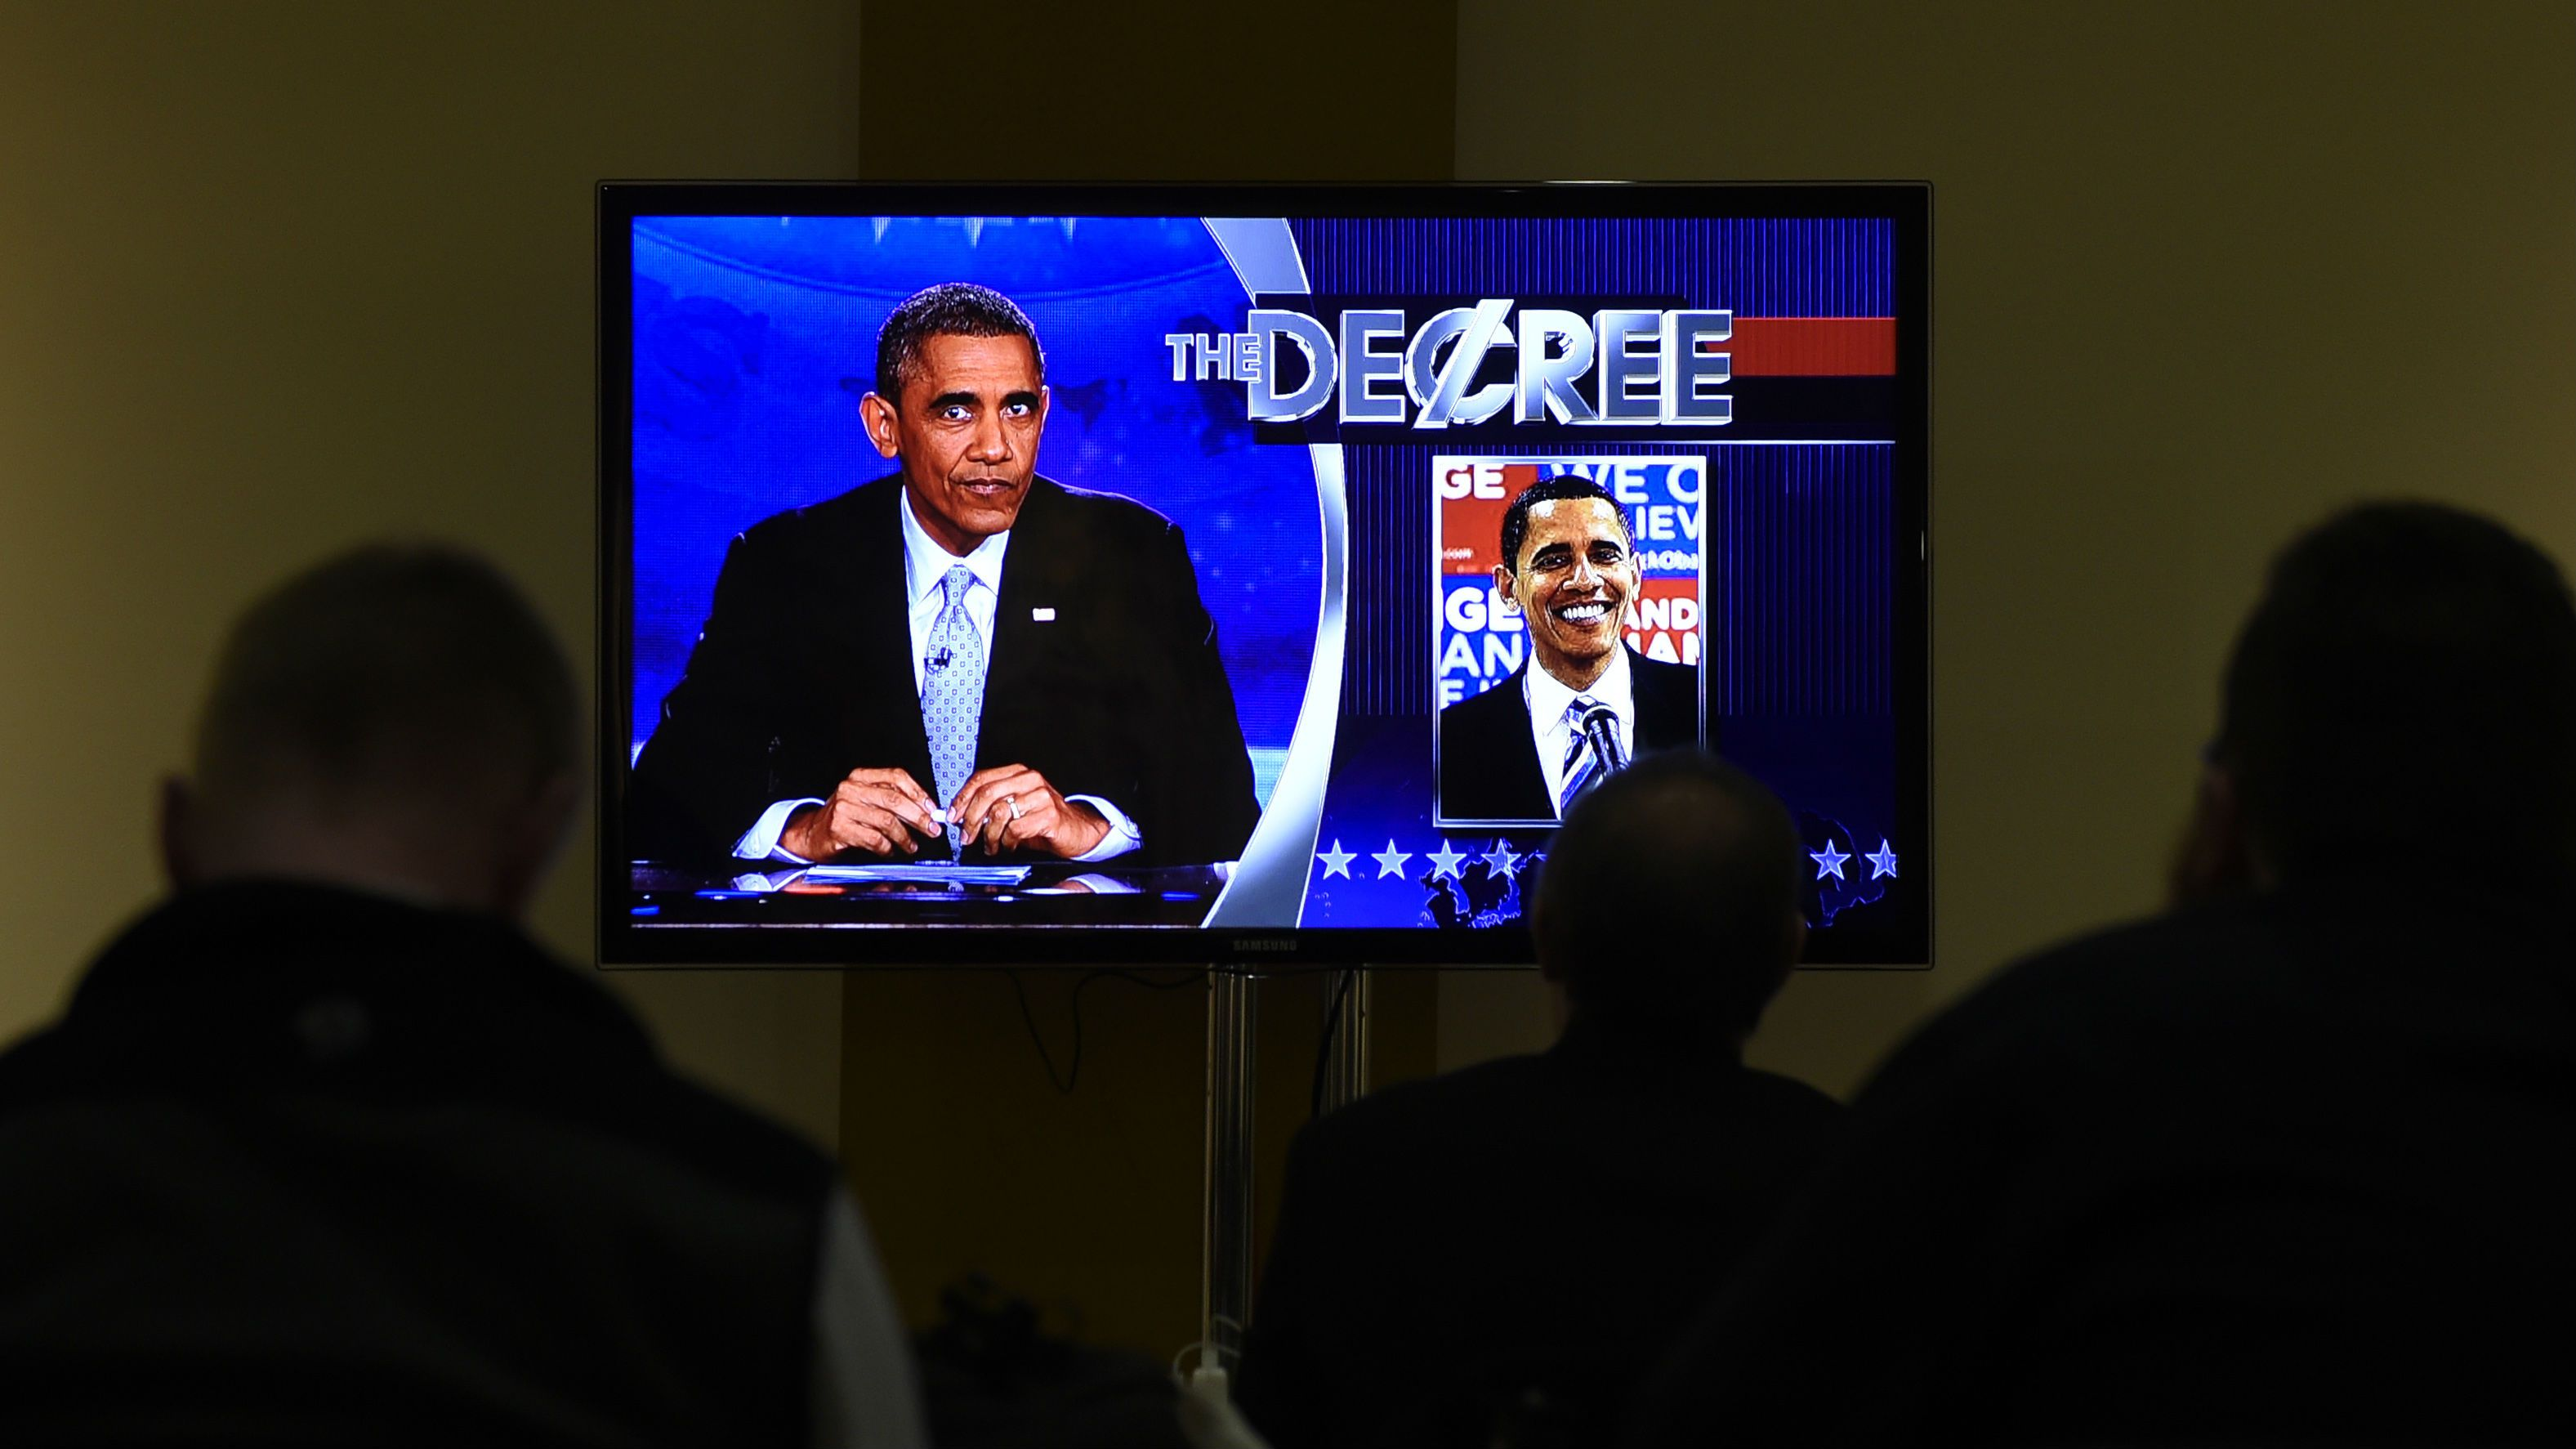 Obama on The Colbert Report